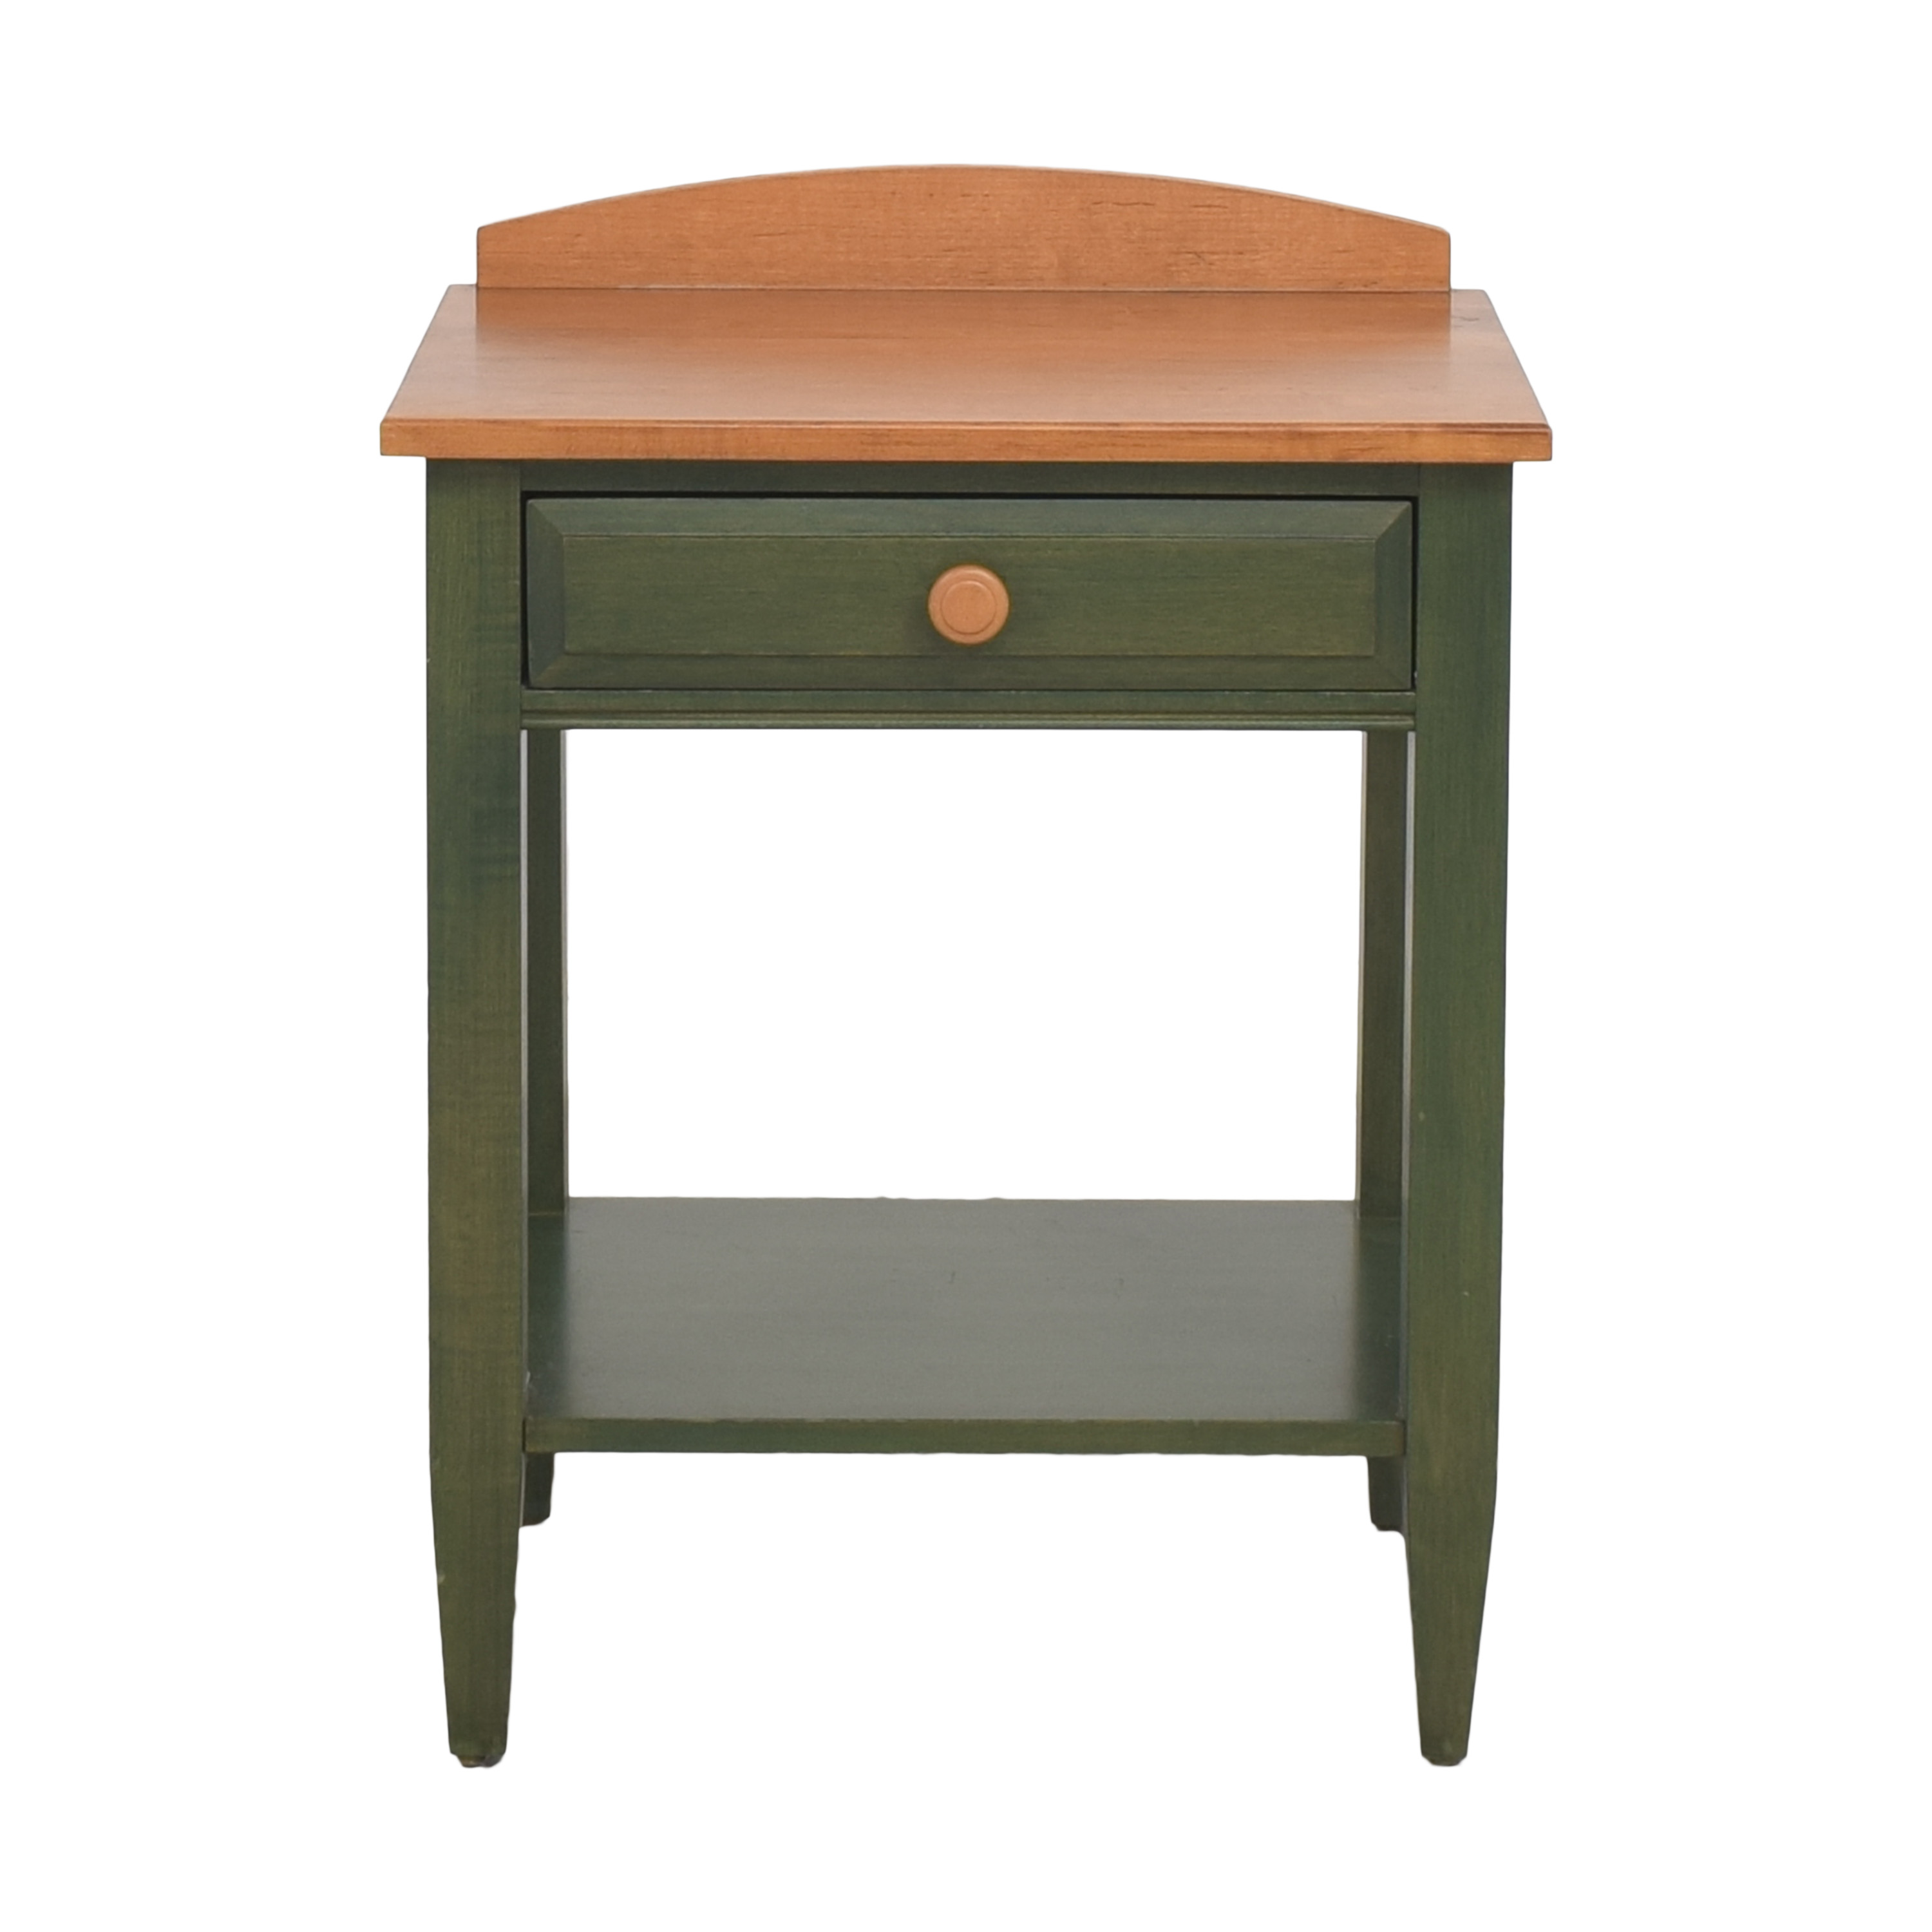 Ethan Allen Ethan Allen Country Colors Nightstand on sale